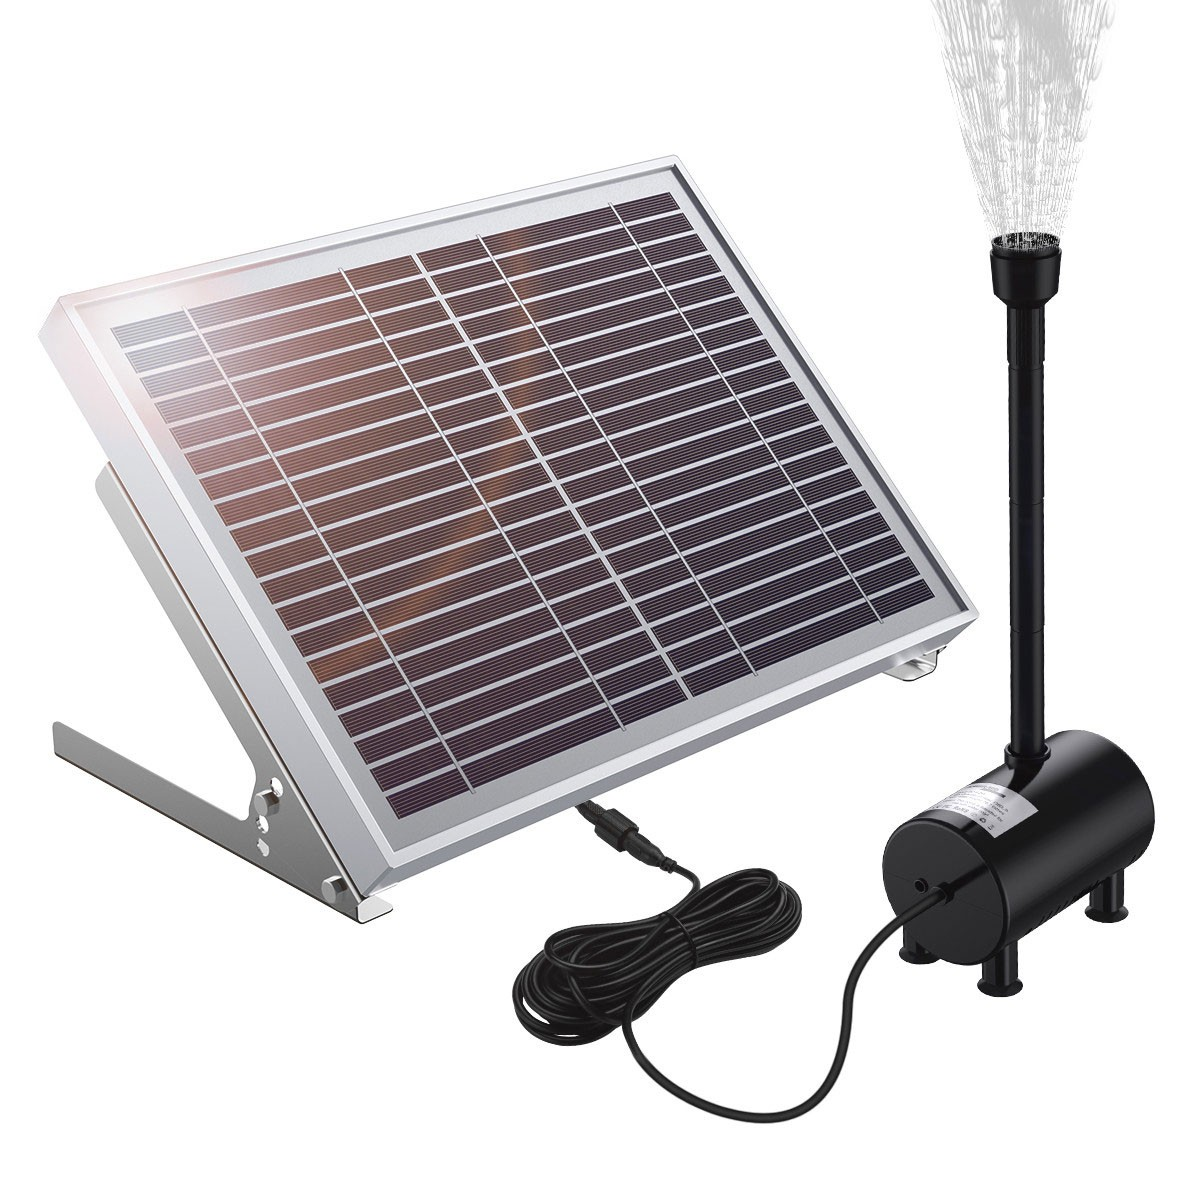 Poweradd Official Website Power Your Life Solar 2nd Edition Upgrades And Battery Bank Wiring Youtube Water Fountain Pump Kits For Garden Yard Pool